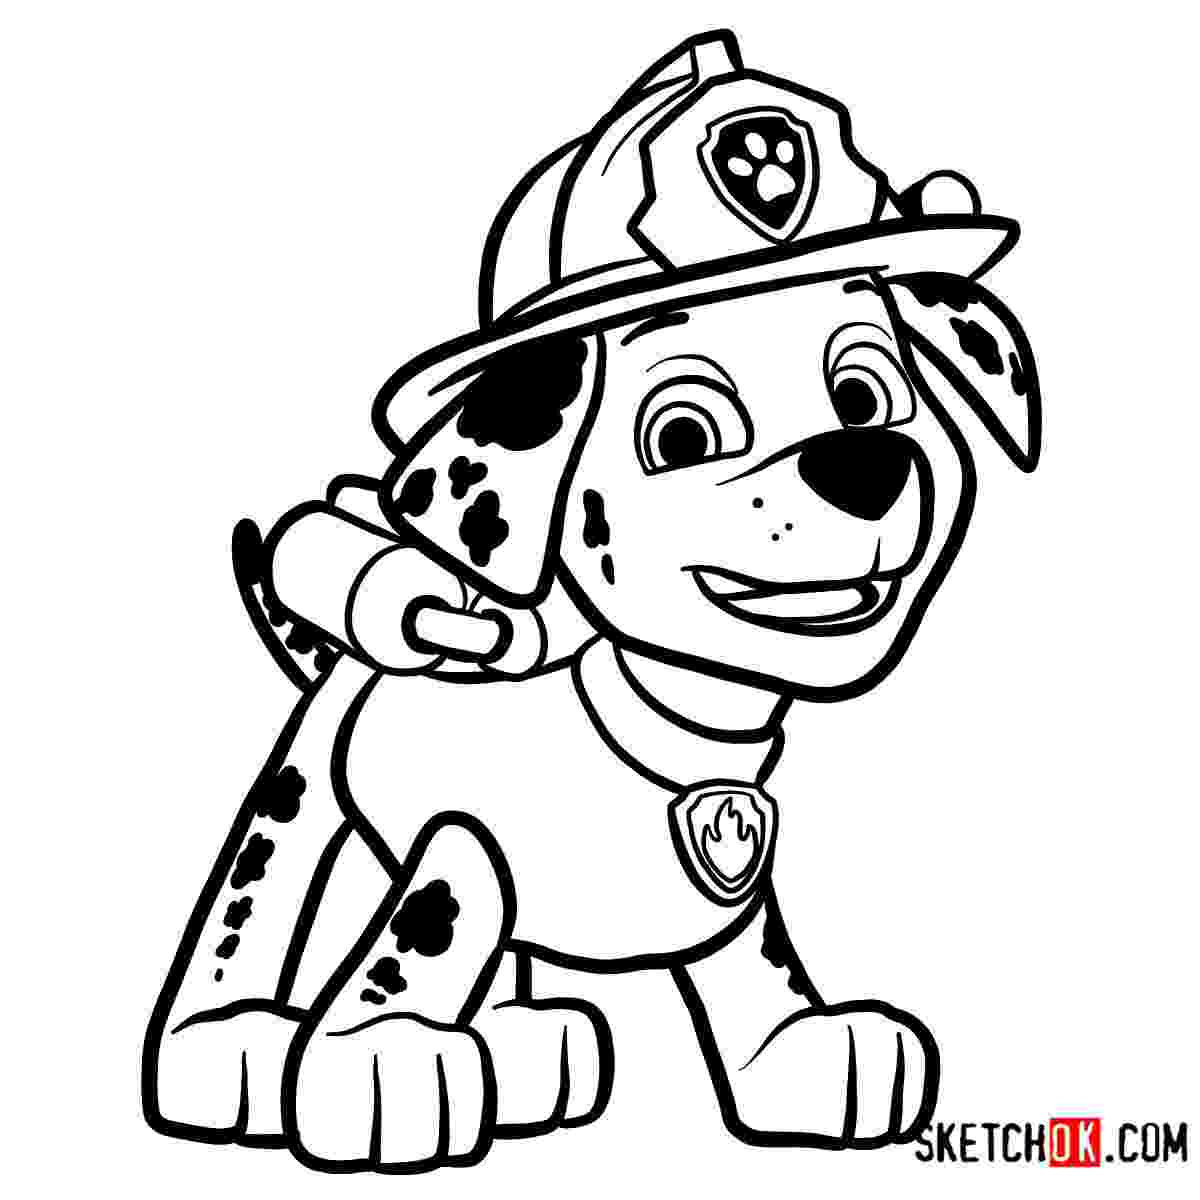 marshall from paw patrol marshall paw patrol drawing at getdrawingscom free for paw patrol marshall from